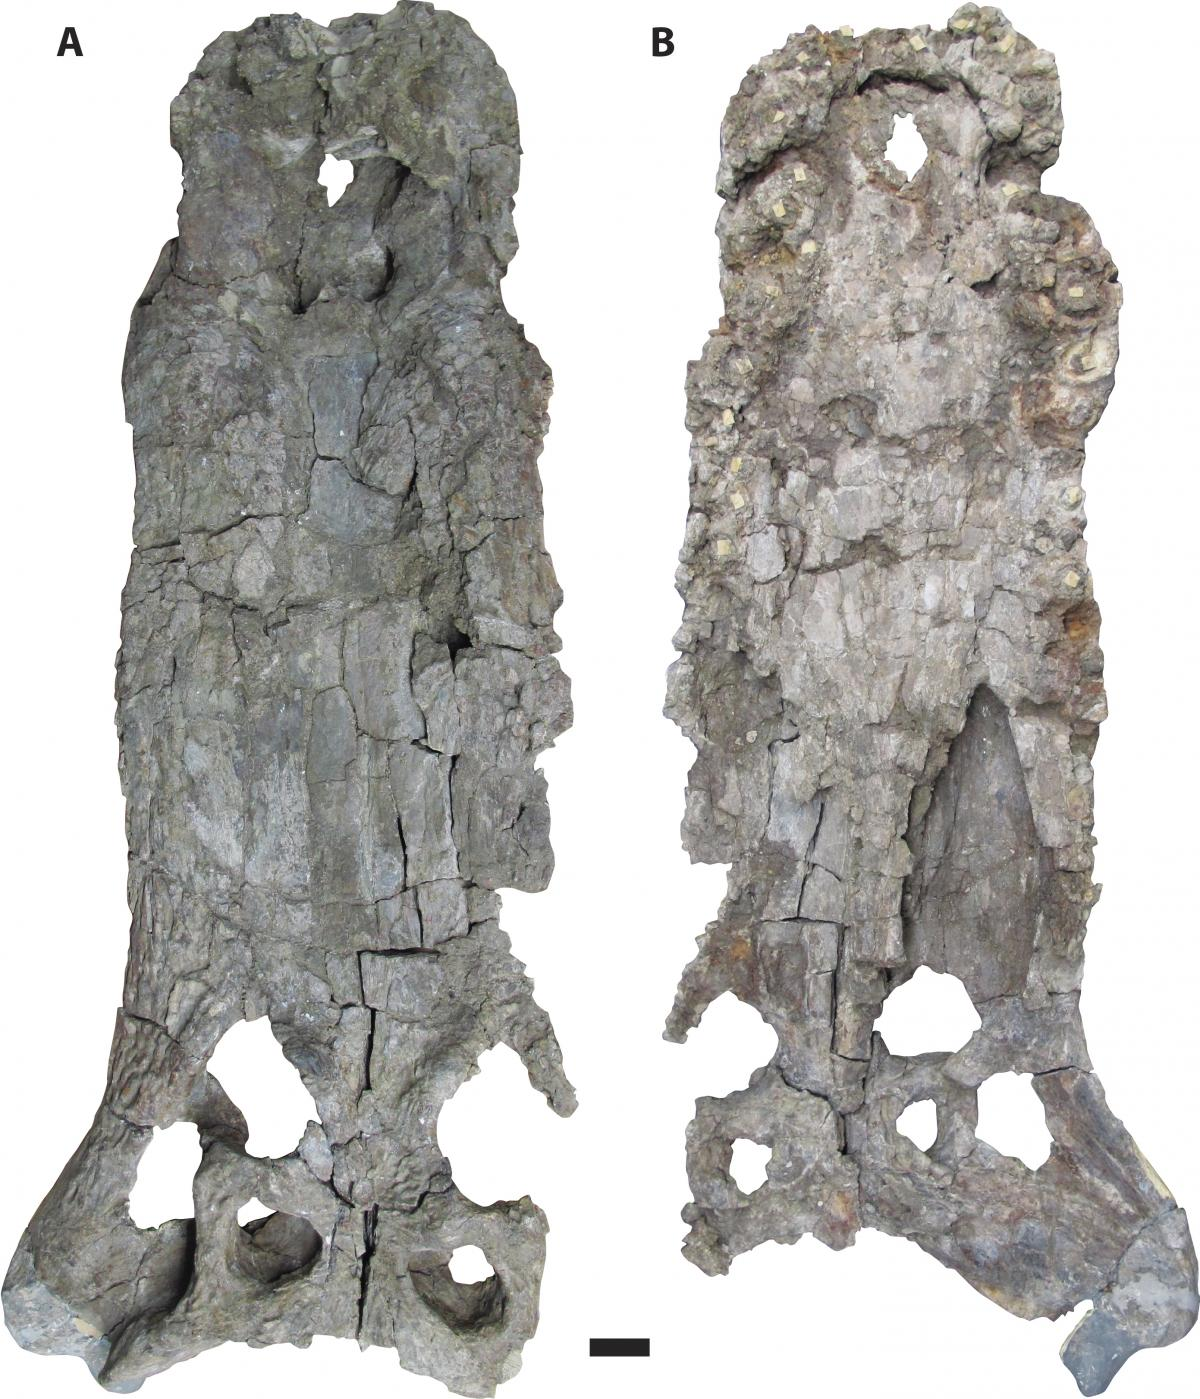 Deinosuchus were the largest semiaquatic predators in their environments and are known to have fed on large vertebrates, including dinosaurs. The photo shows a Deinosuchus skull in dorsal view (A) and a skull in ventral view (B).